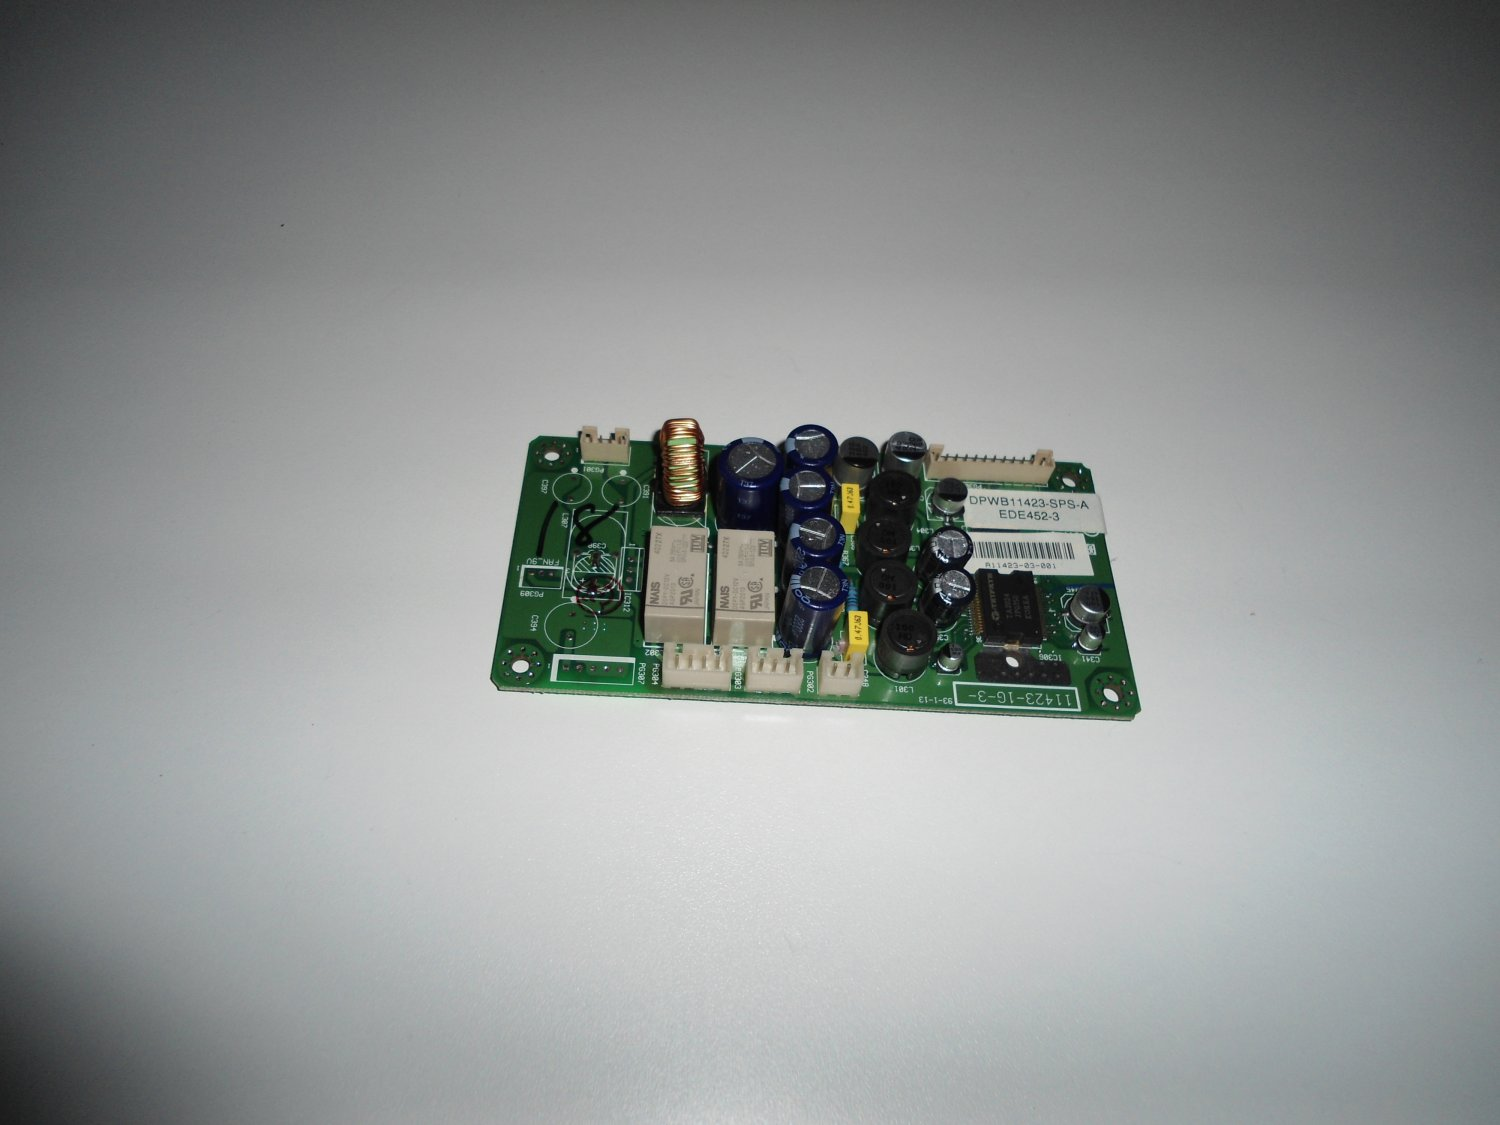 Maxent DPWB11423-SPS-A Audio Board